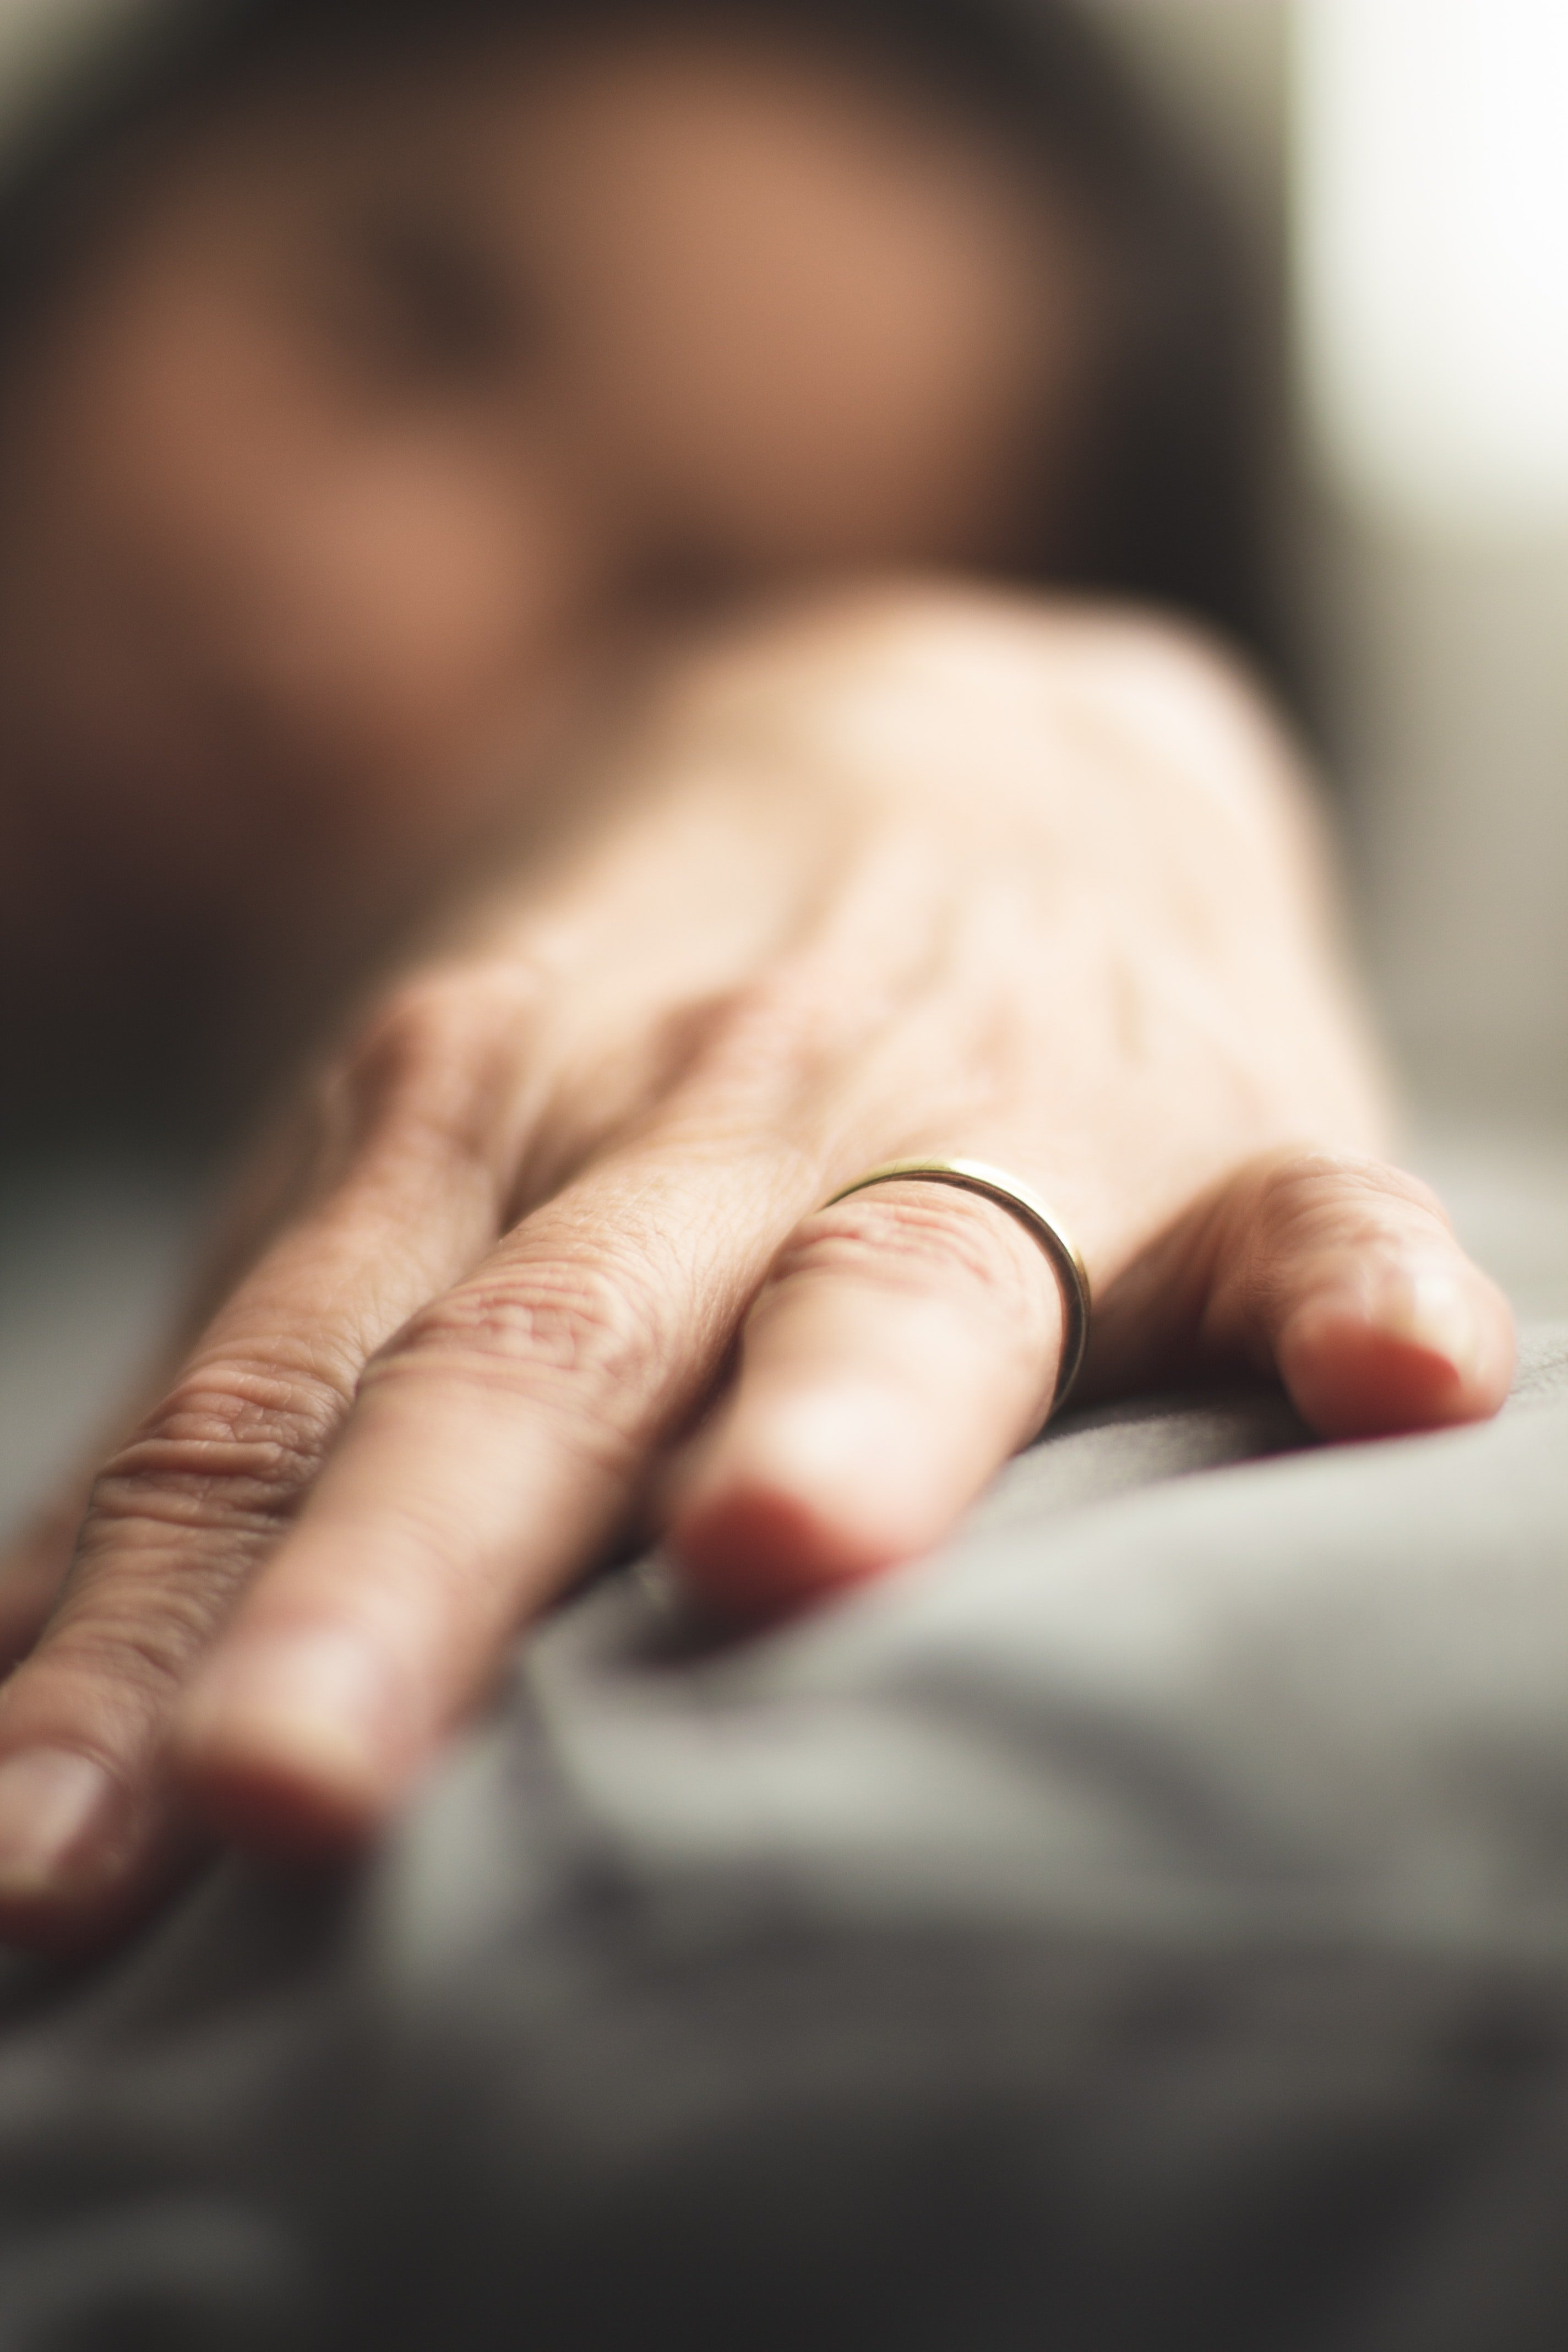 A close up of a hand with a wedding ring   Source: Pexels